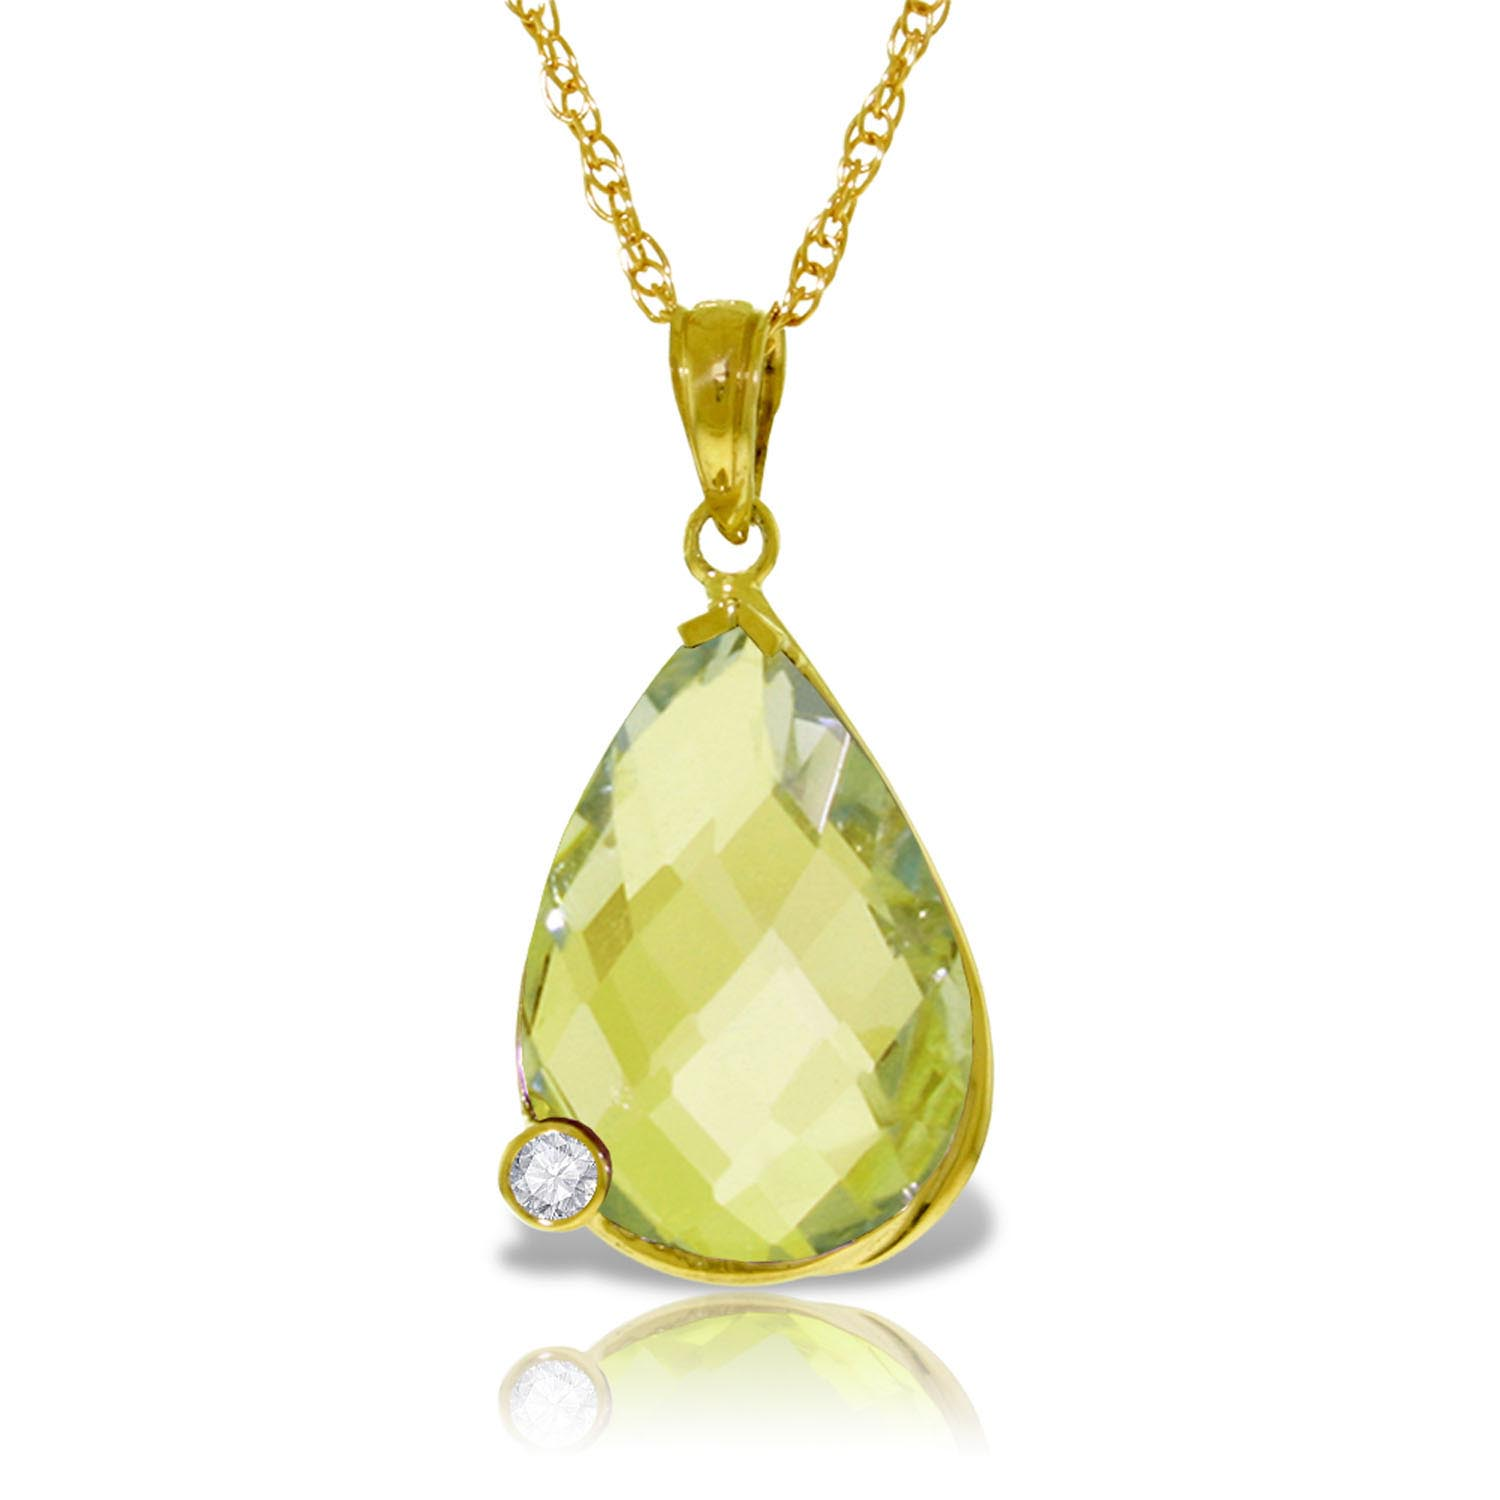 Lemon Quartz and Diamond Chequer Pendant Necklace 5.0ct in 9ct Gold